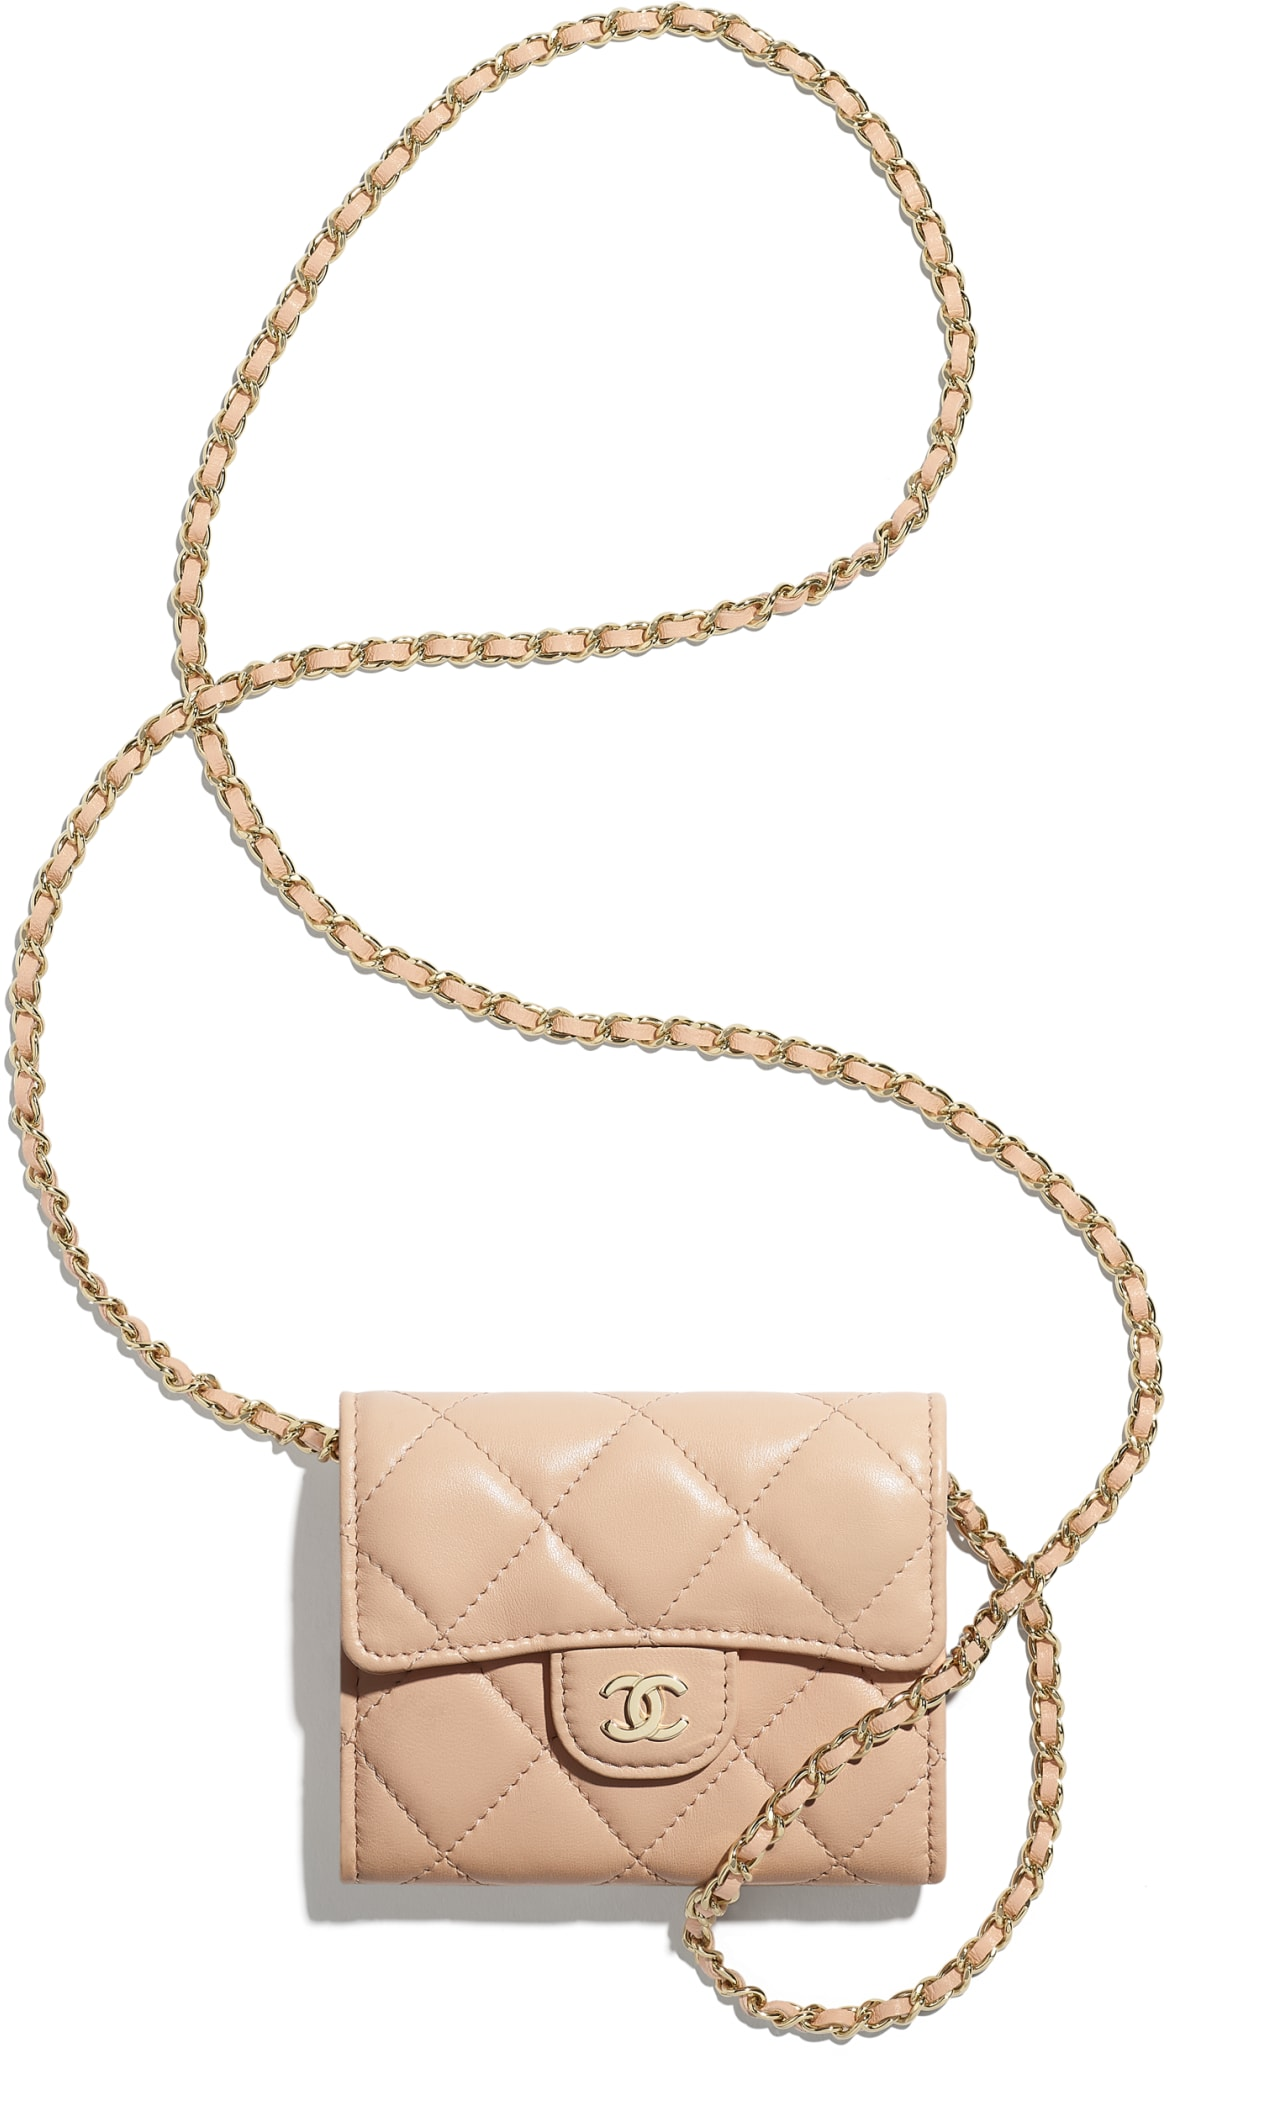 Classic Clutch with Chain